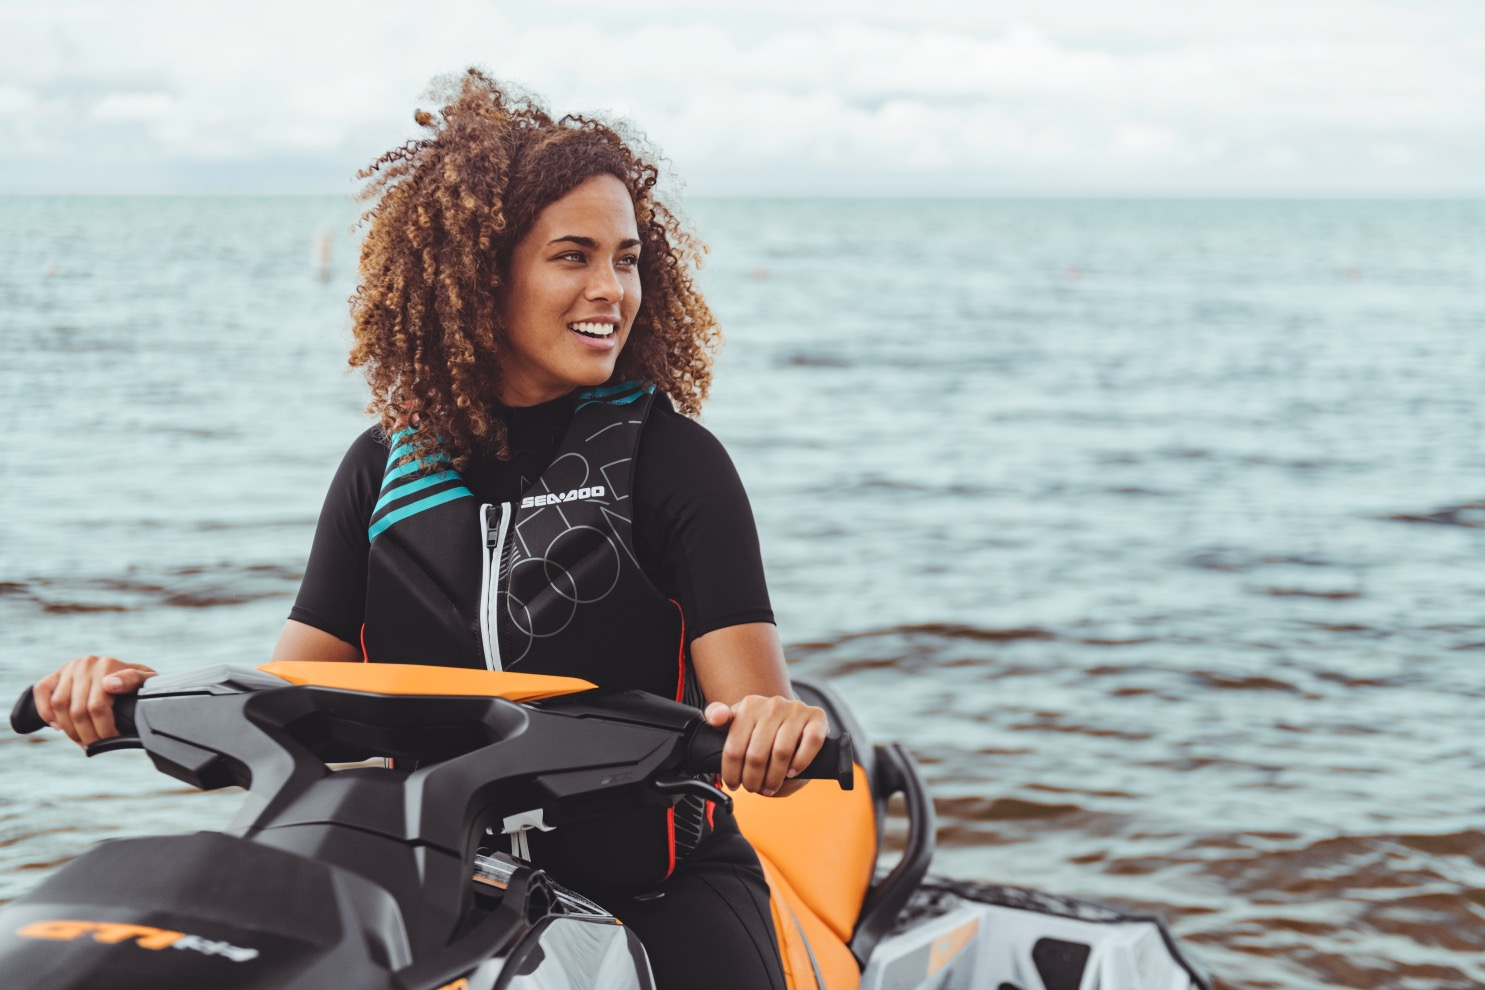 Ride with peace of mind with SPOT X Jet Ski Riding.